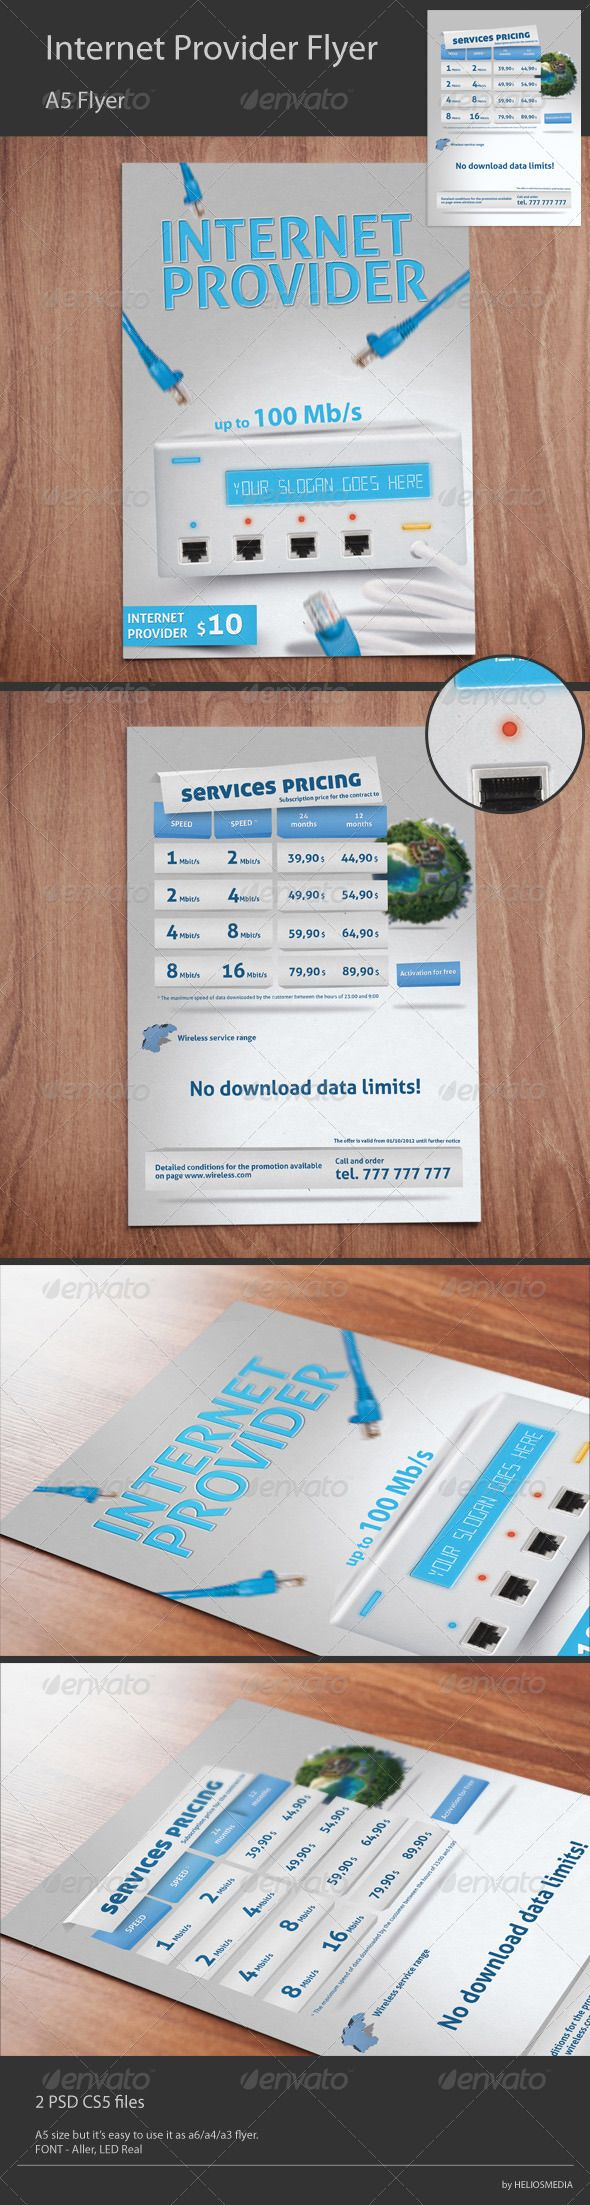 Wireless Internet Provider Flyer — Photoshop PSD #internet #a5 • Available here → https://graphicriver.net/item/wireless-internet-provider-flyer/3227501?ref=pxcr